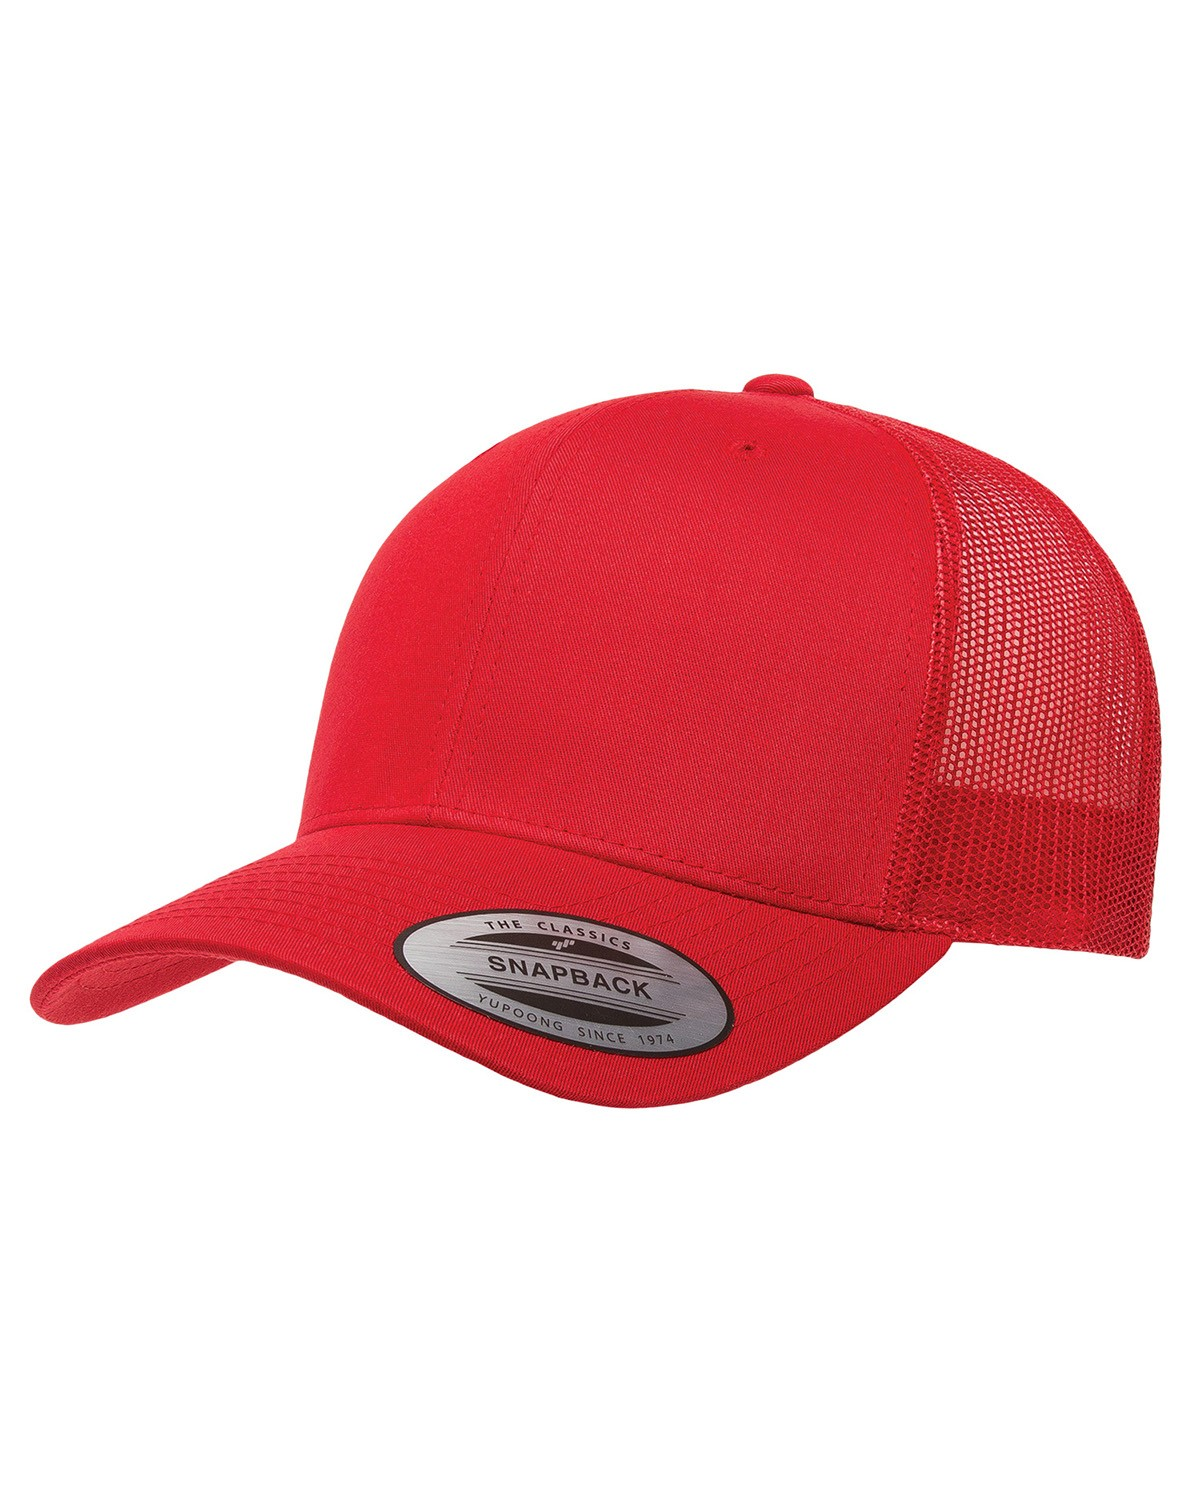 6606 Yupoong RED